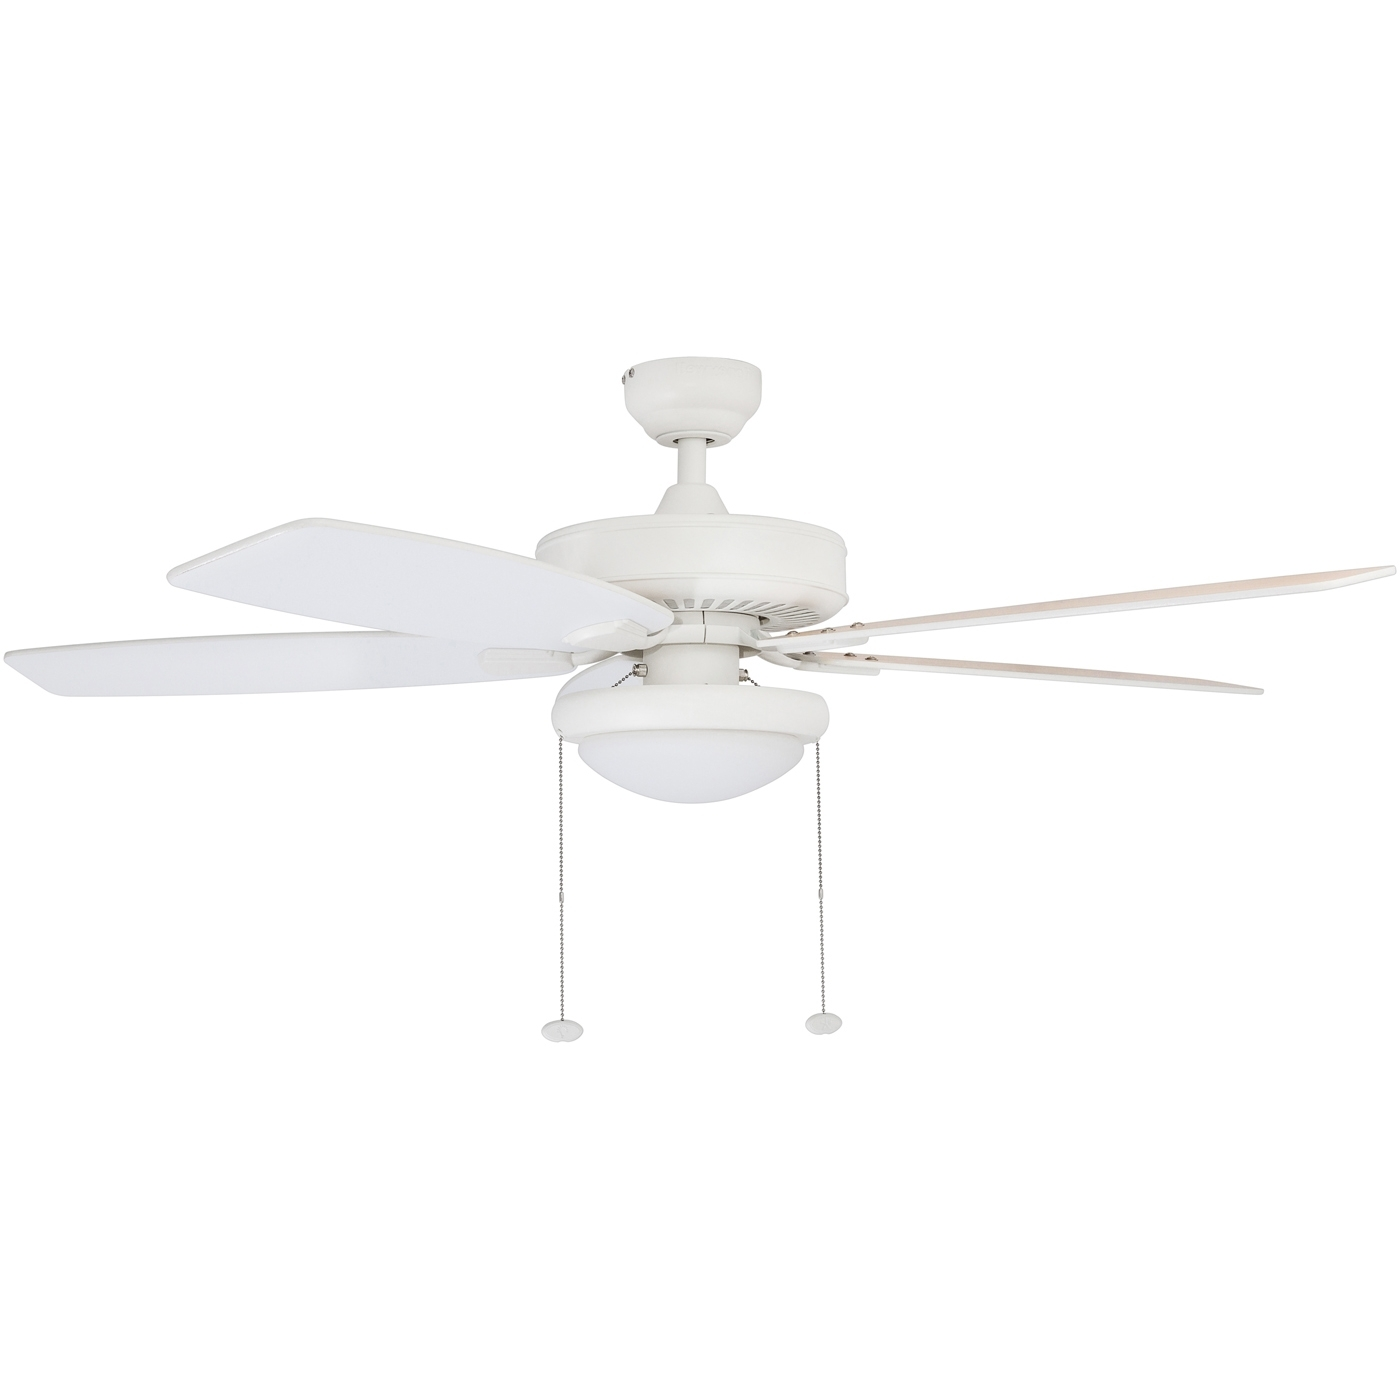 """Outdoor Ceiling Fan With Brake Pertaining To Trendy Honeywell Blufton 52"""" White Outdoor Ceiling Fan – Walmart (View 14 of 20)"""